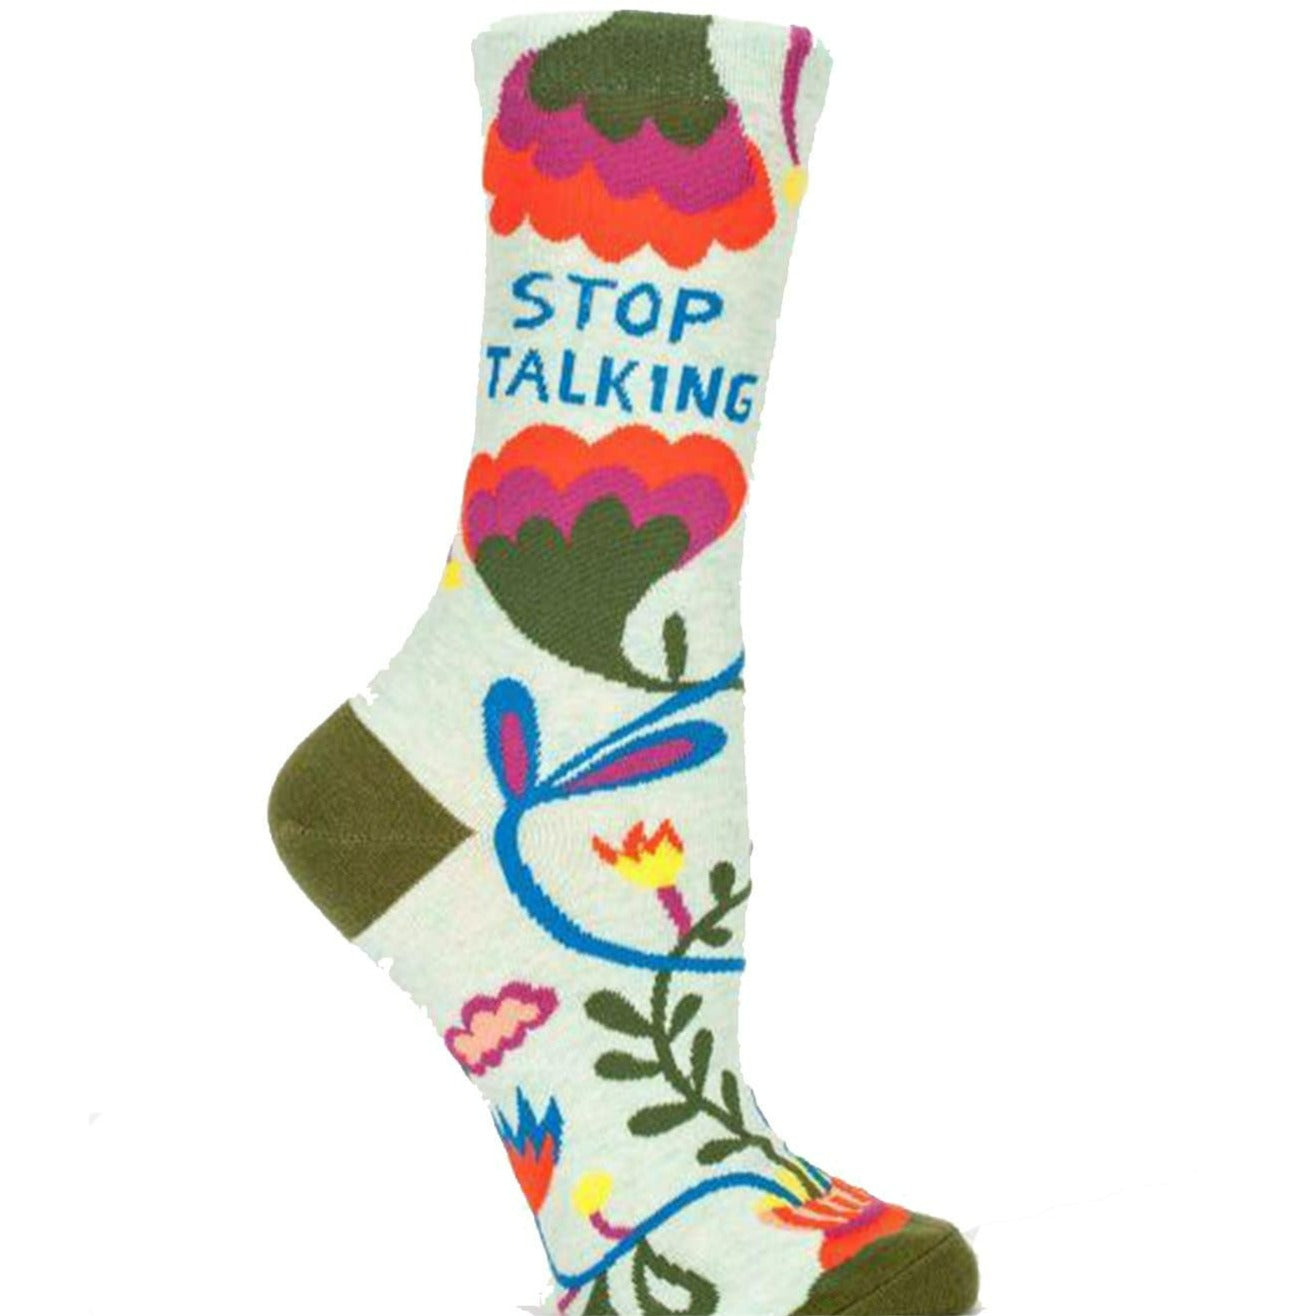 Stop Talking Socks - Crew Socks for Women